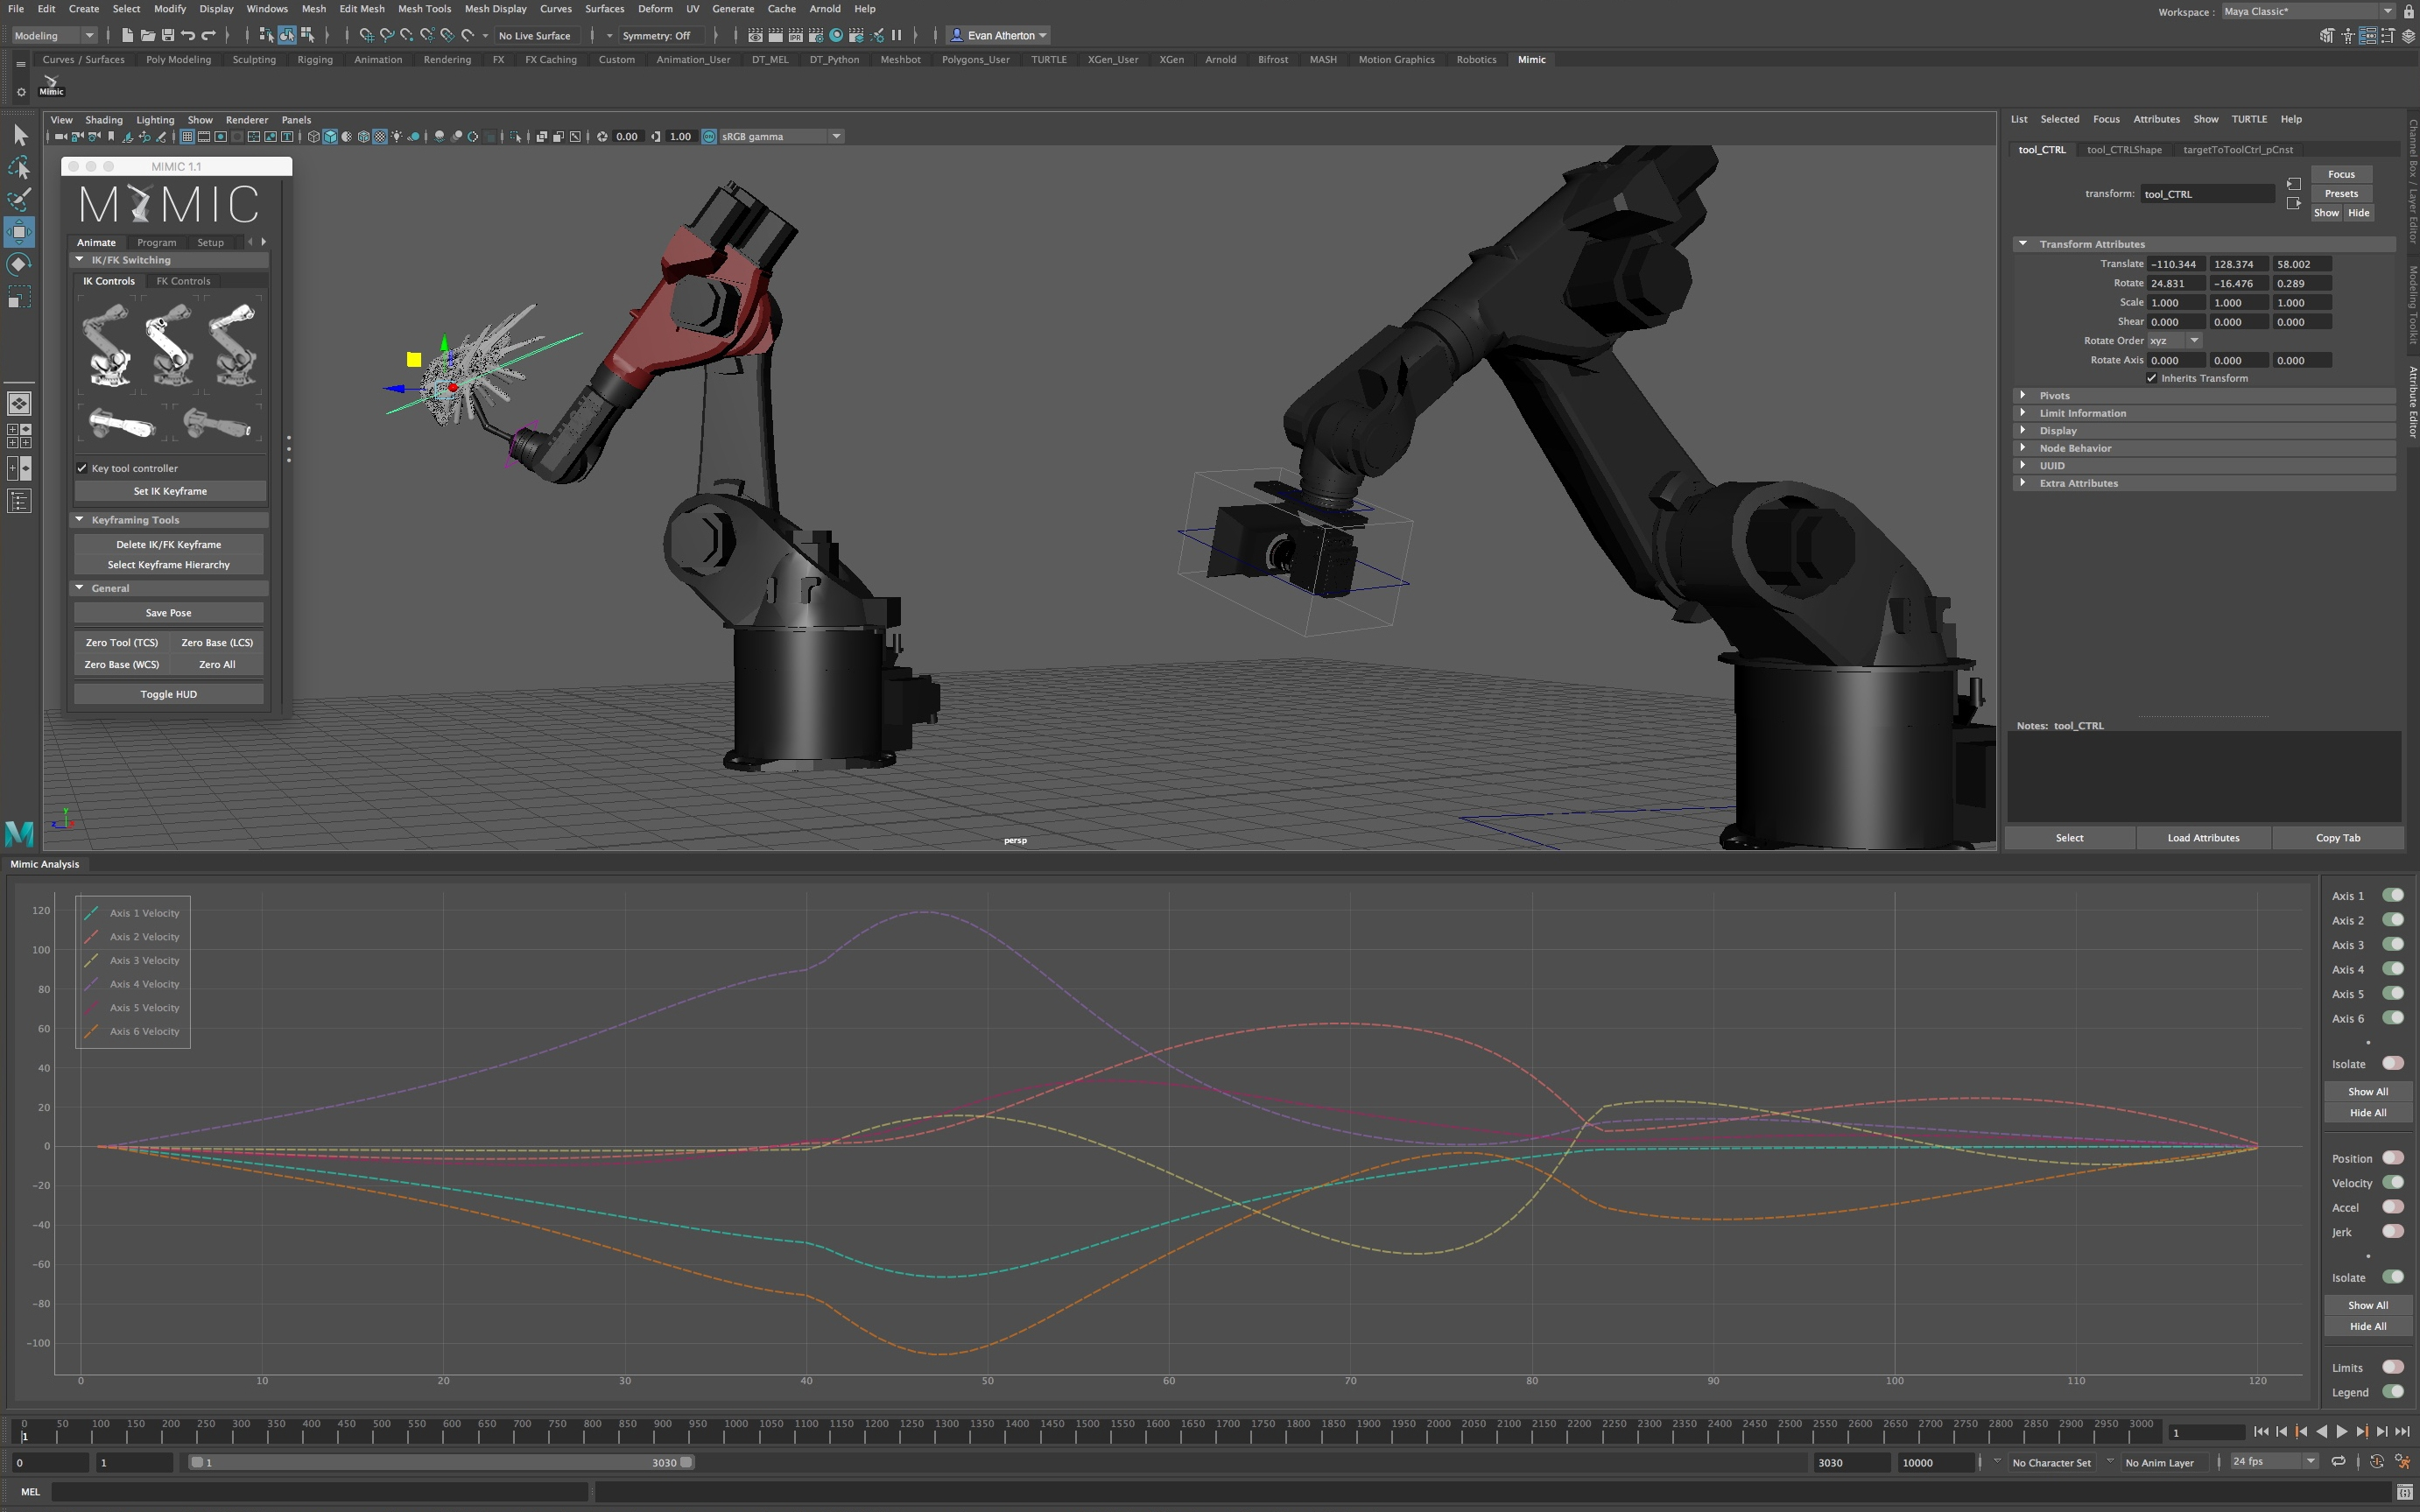 Mimic: Industrial Robot Animation and Control for Maya - Free Misc